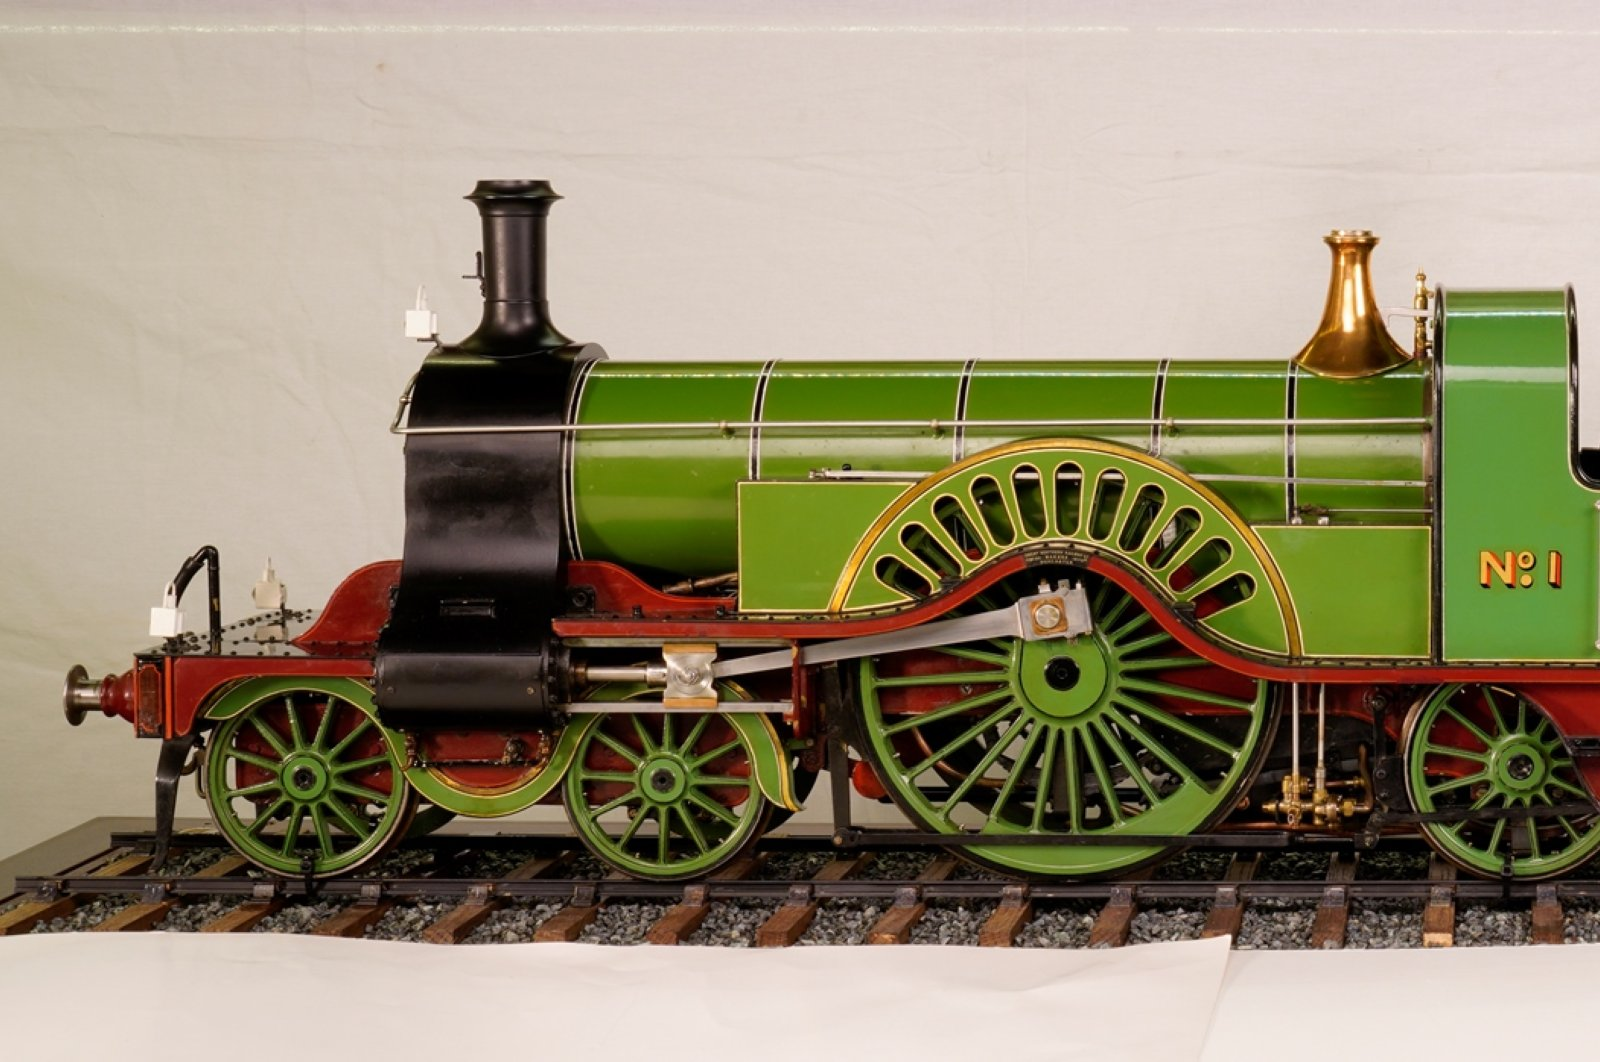 Express Locomotive Model No. 1 was designed by Patrick Stirling.